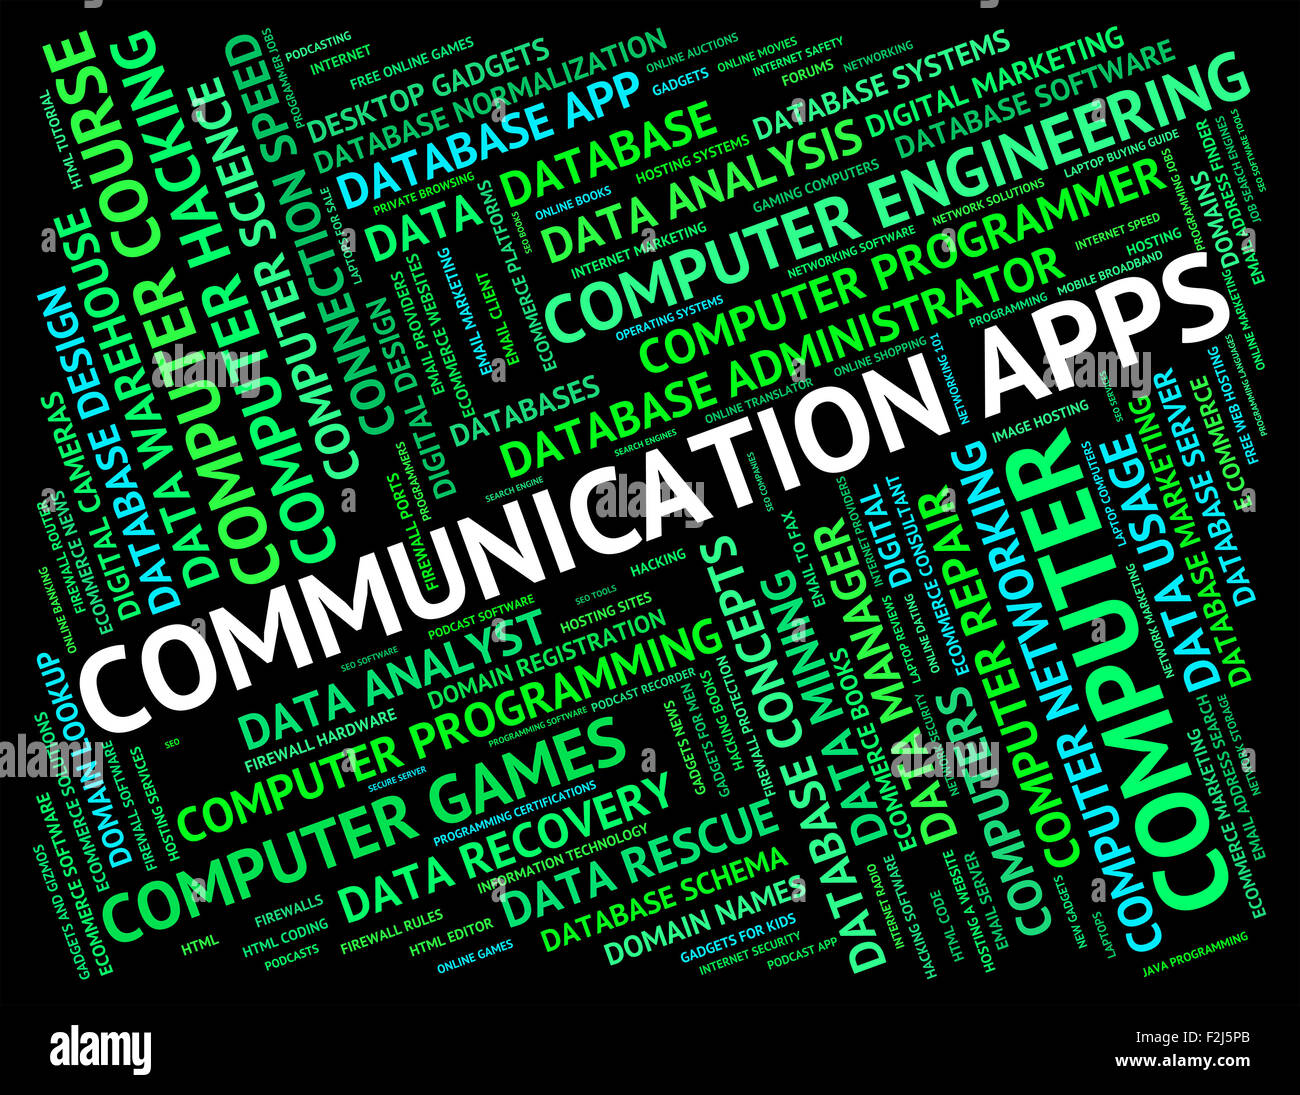 communication apps meaning word computer and chatting stock photo